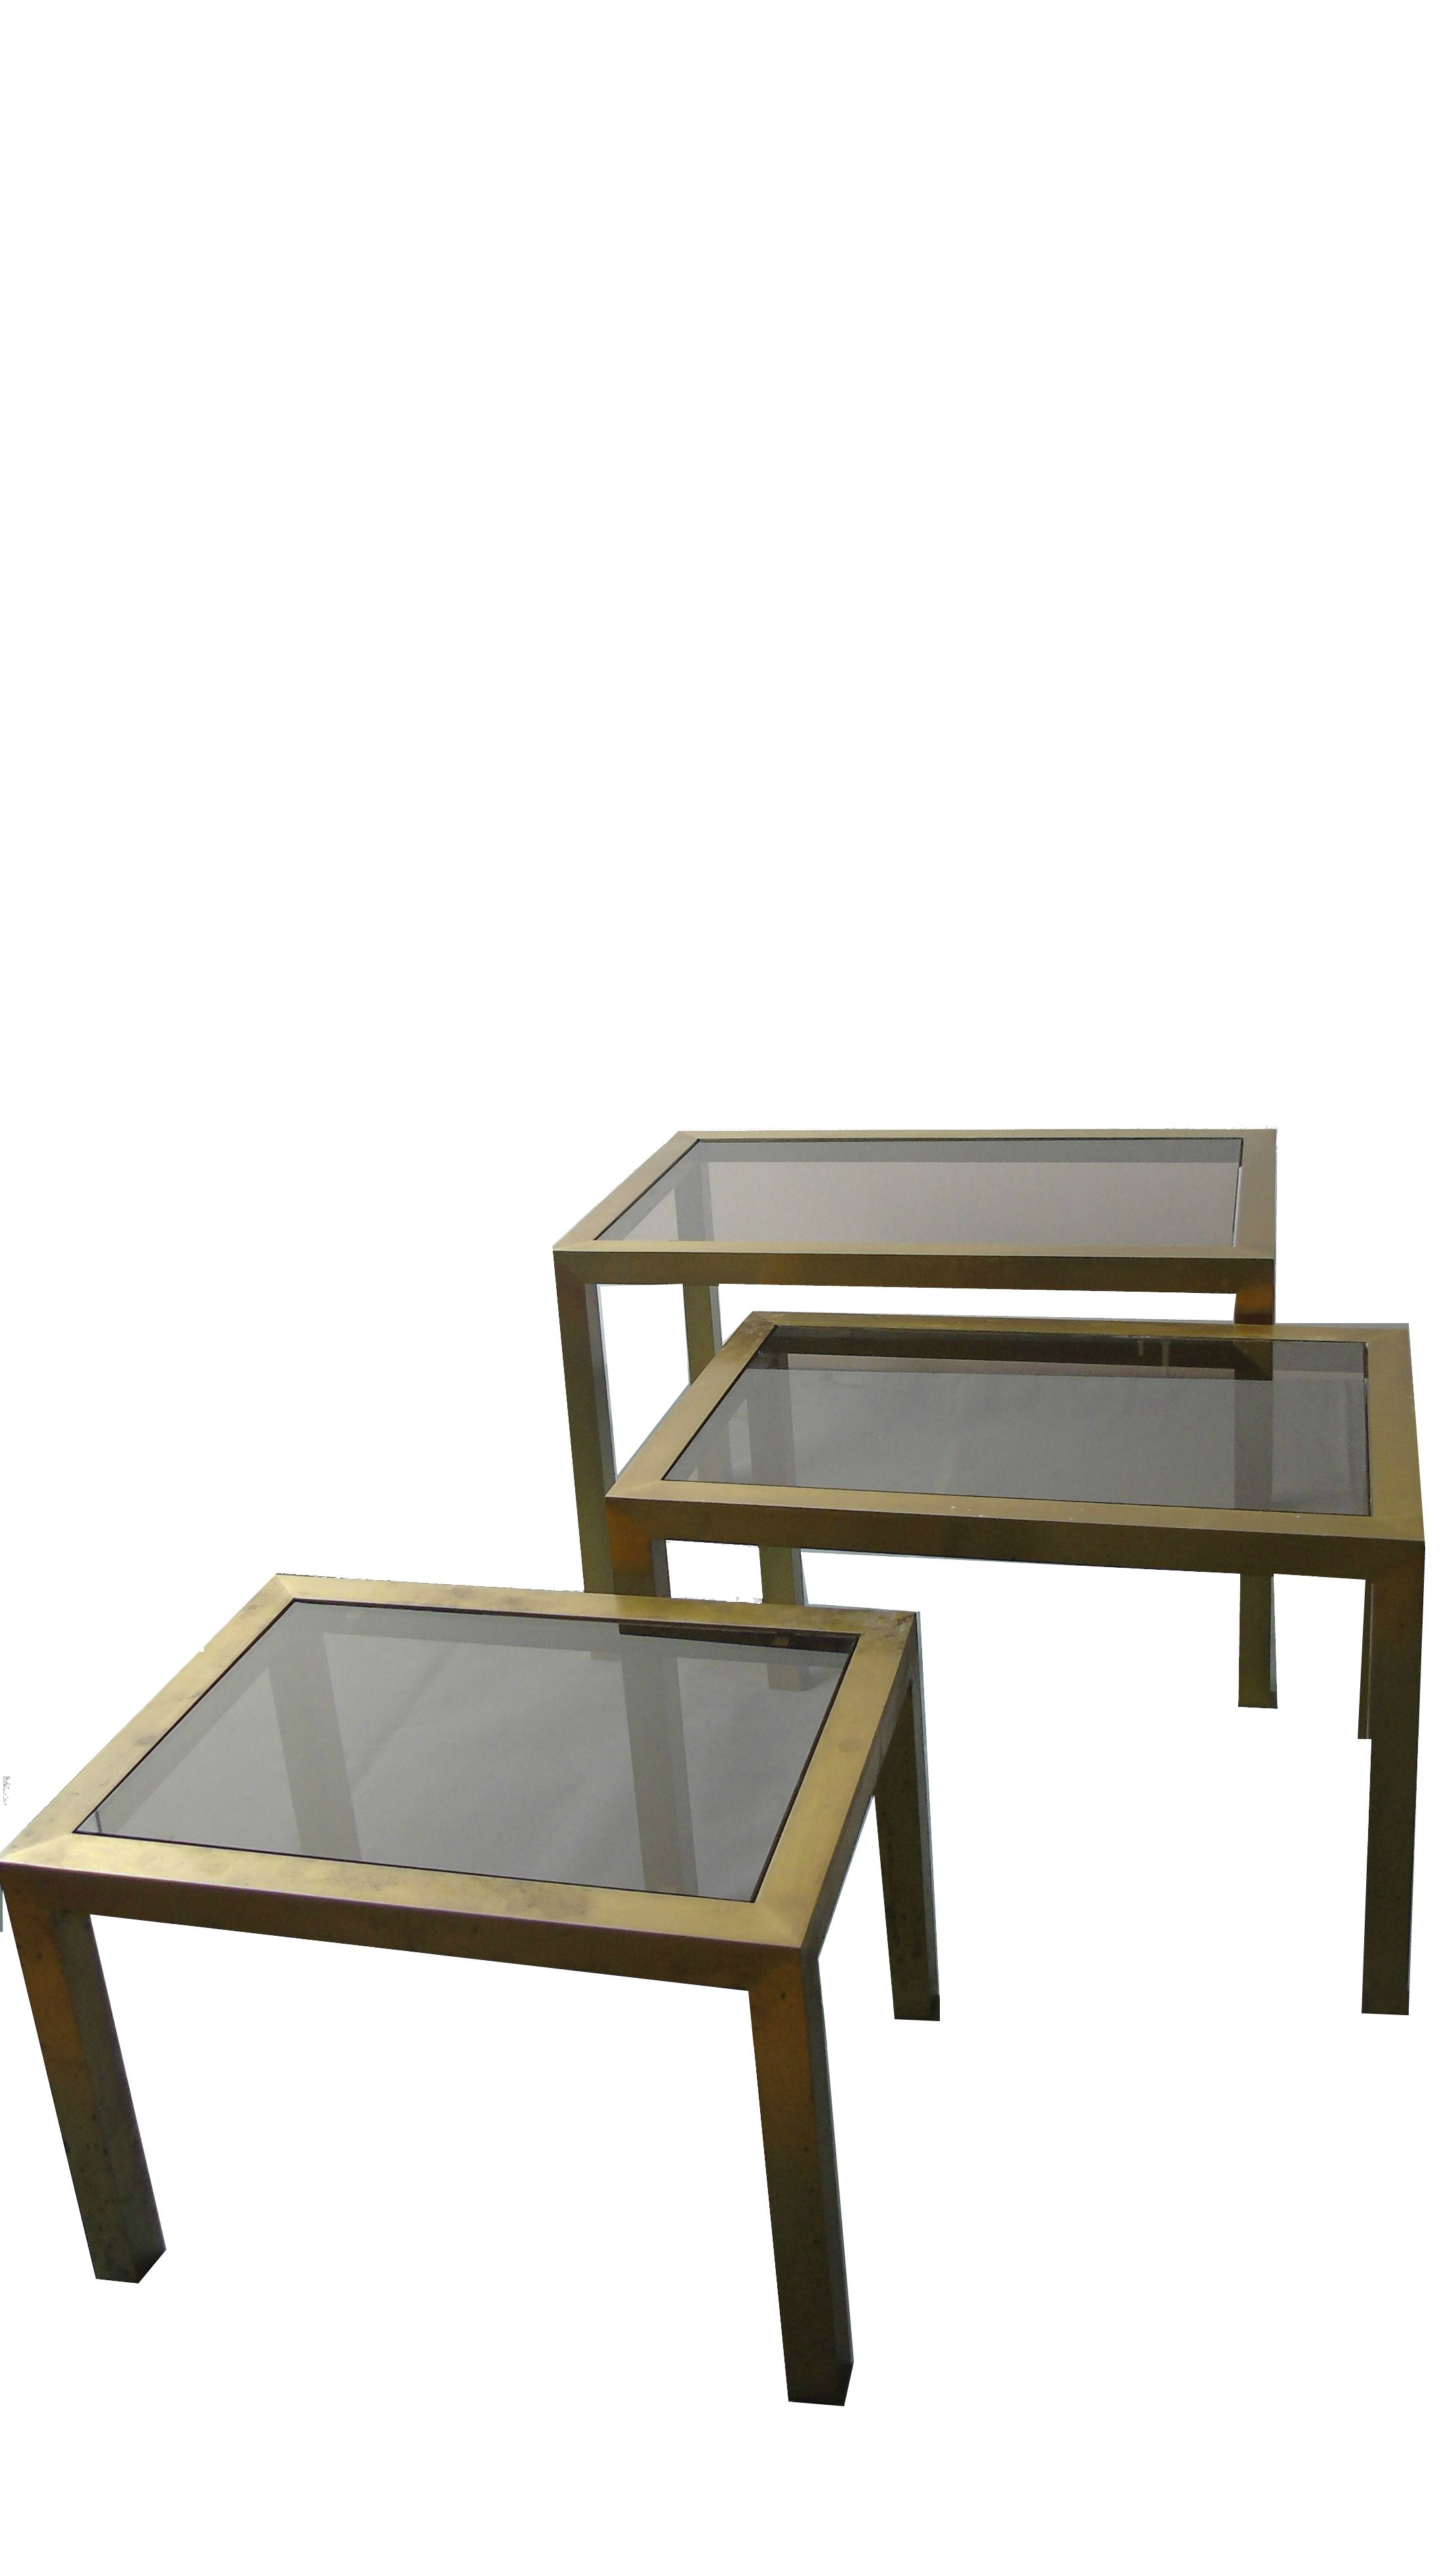 Verbazingwekkend Set of vintage brass nesting tables with smoked glass, 1960s KM-14